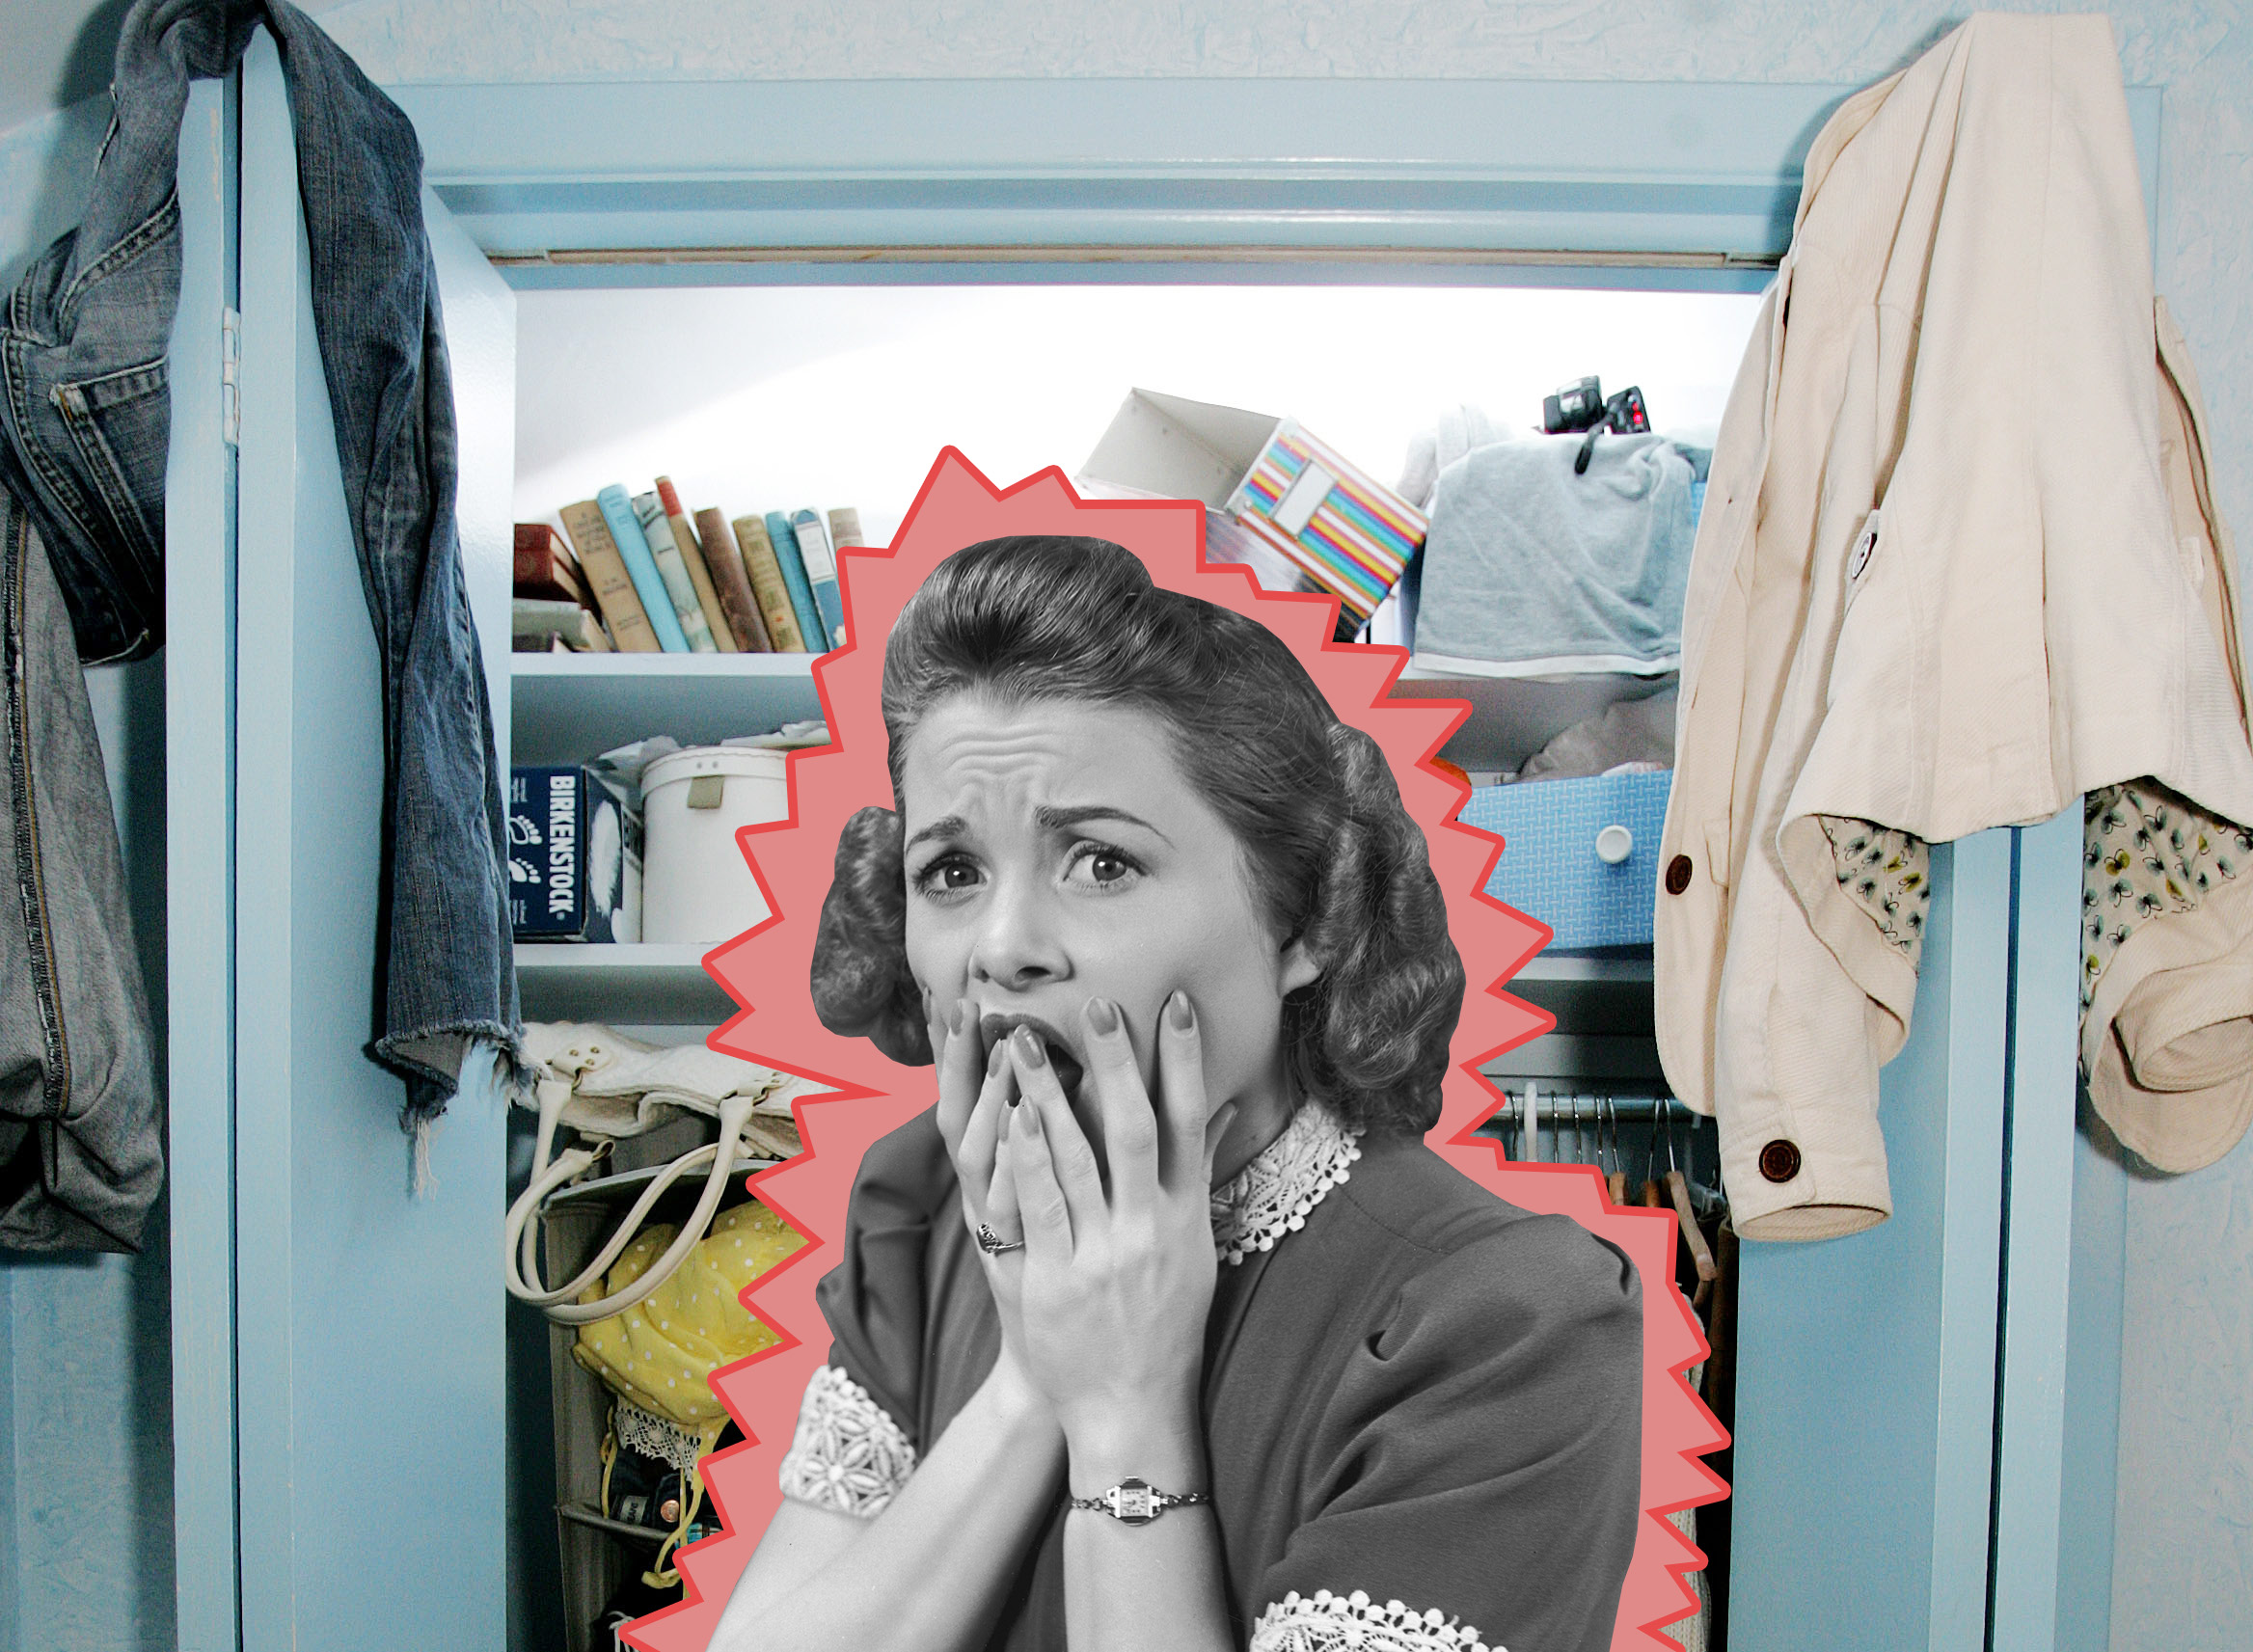 These are the 3 essential questions you need to ask yourself when cleaning out your closet